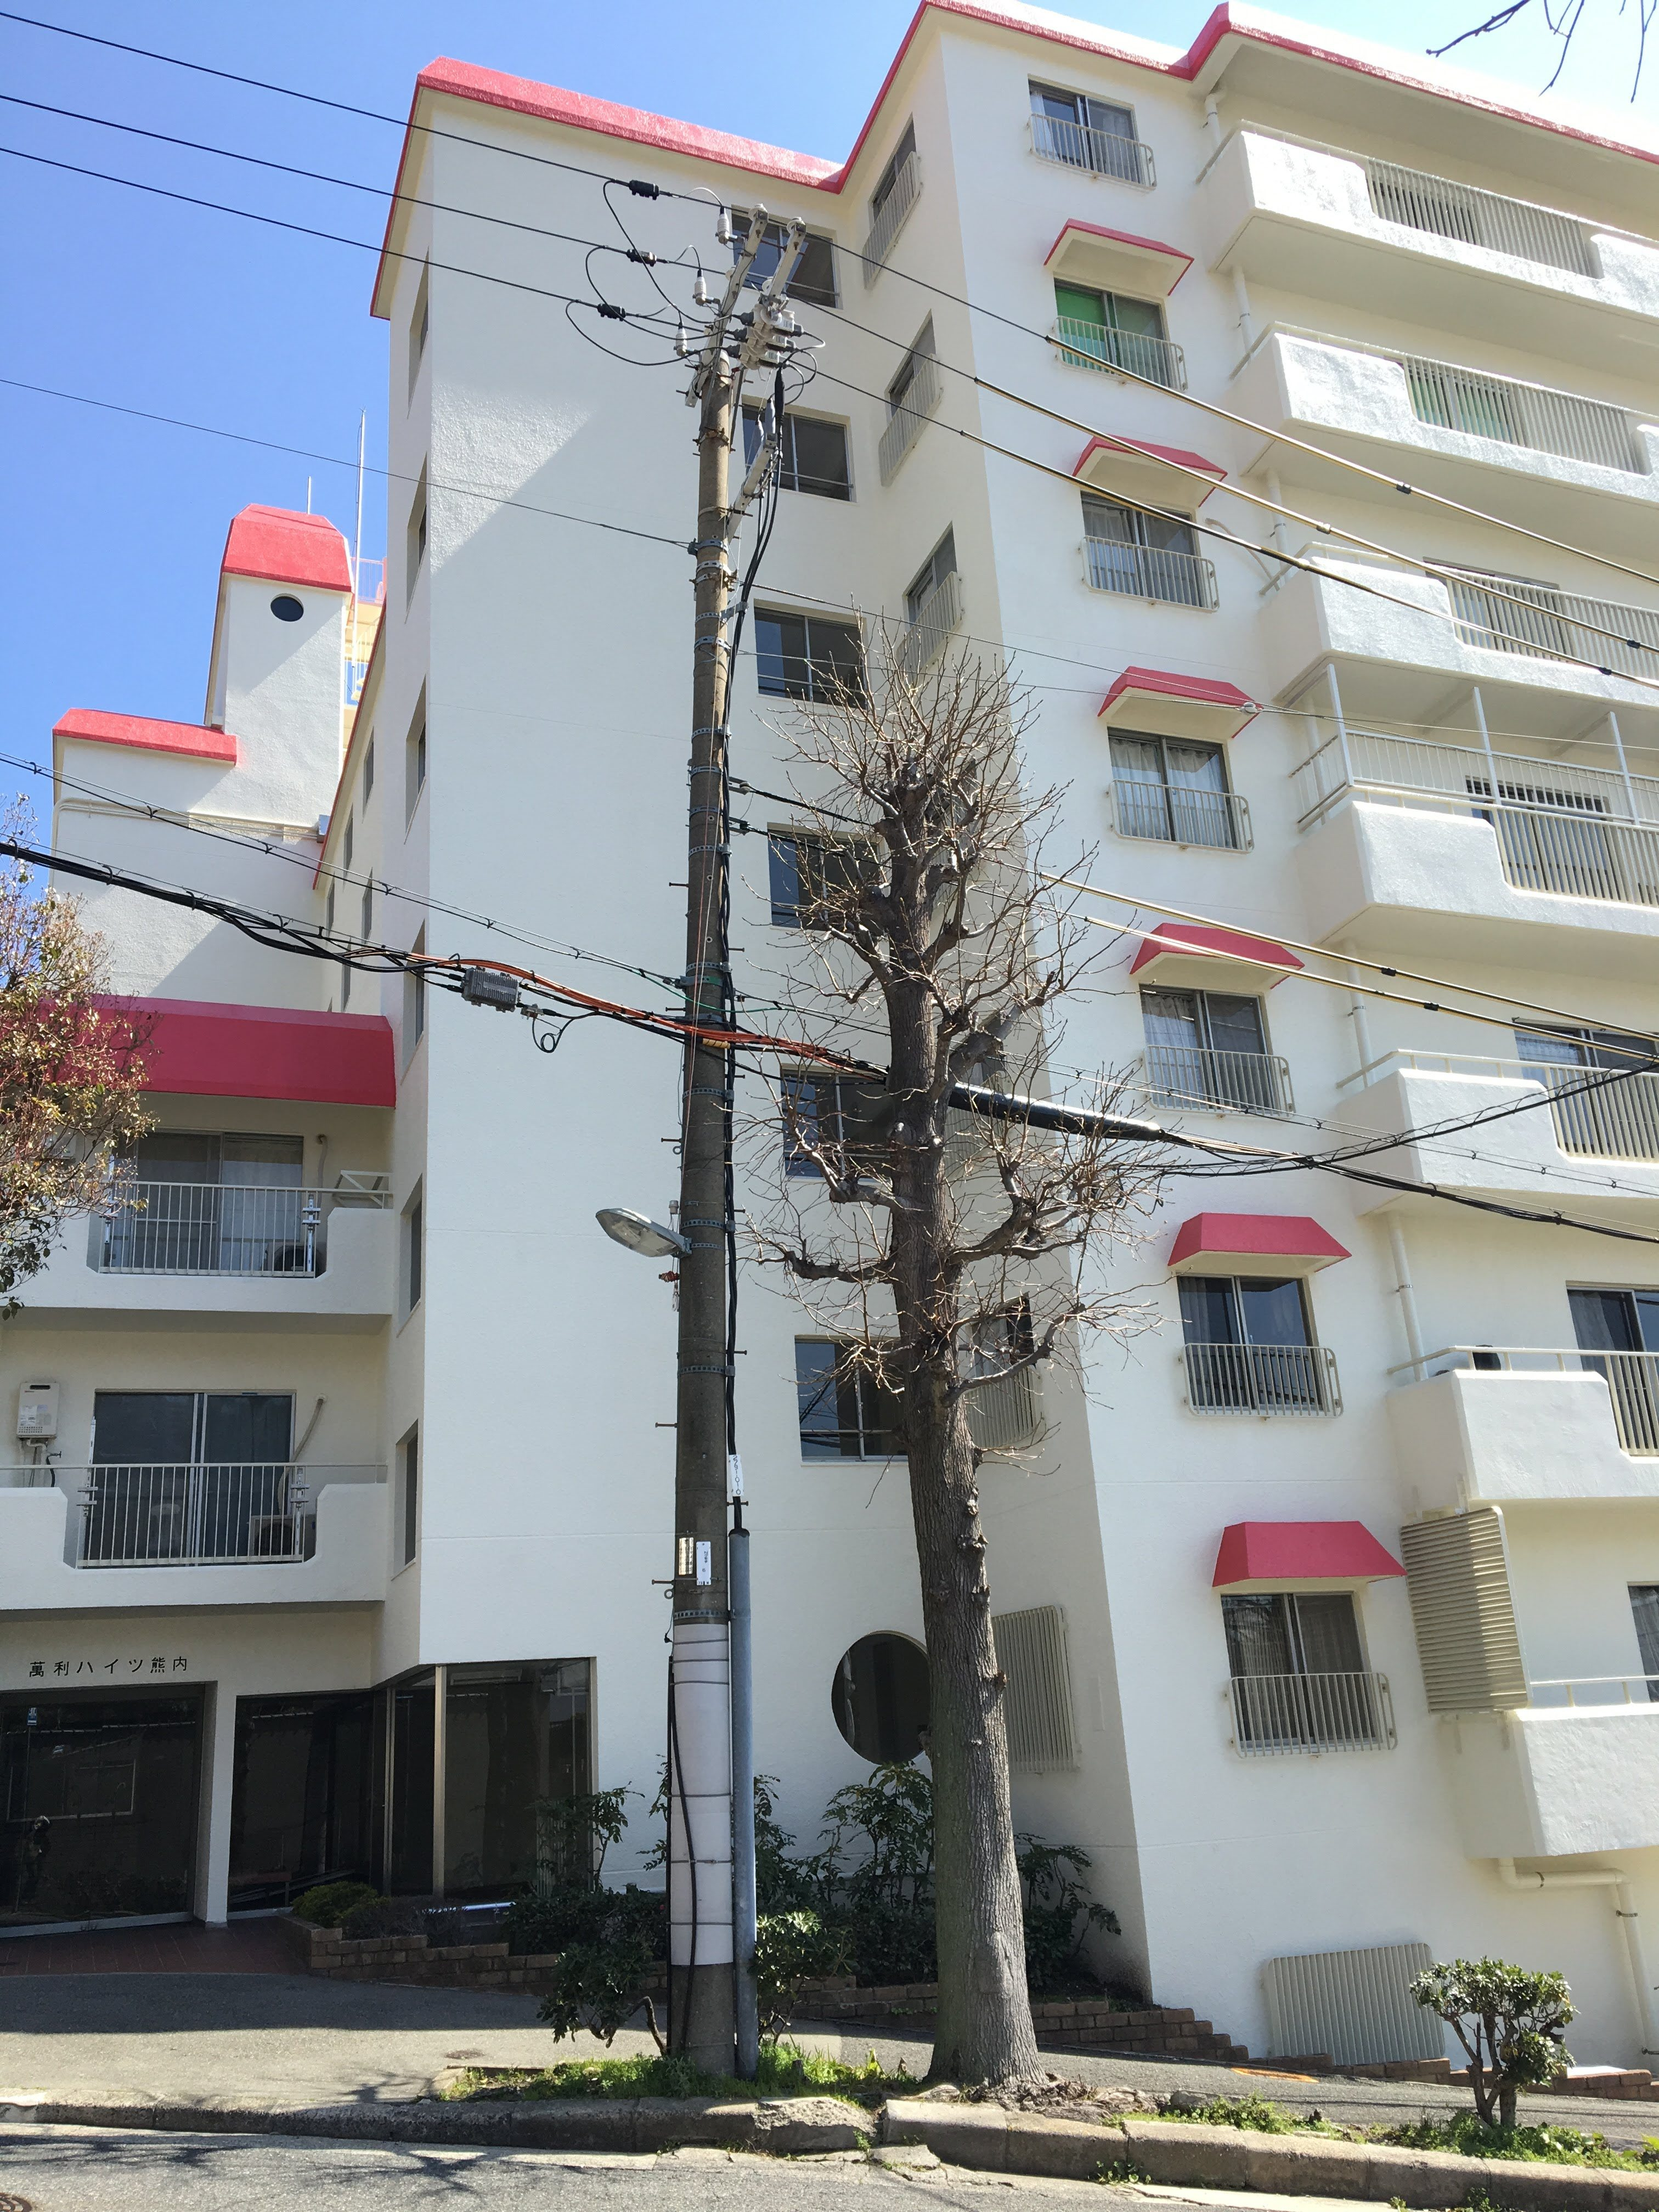 2LDK apartment with spacious bright rooms in quiet area of Kobe